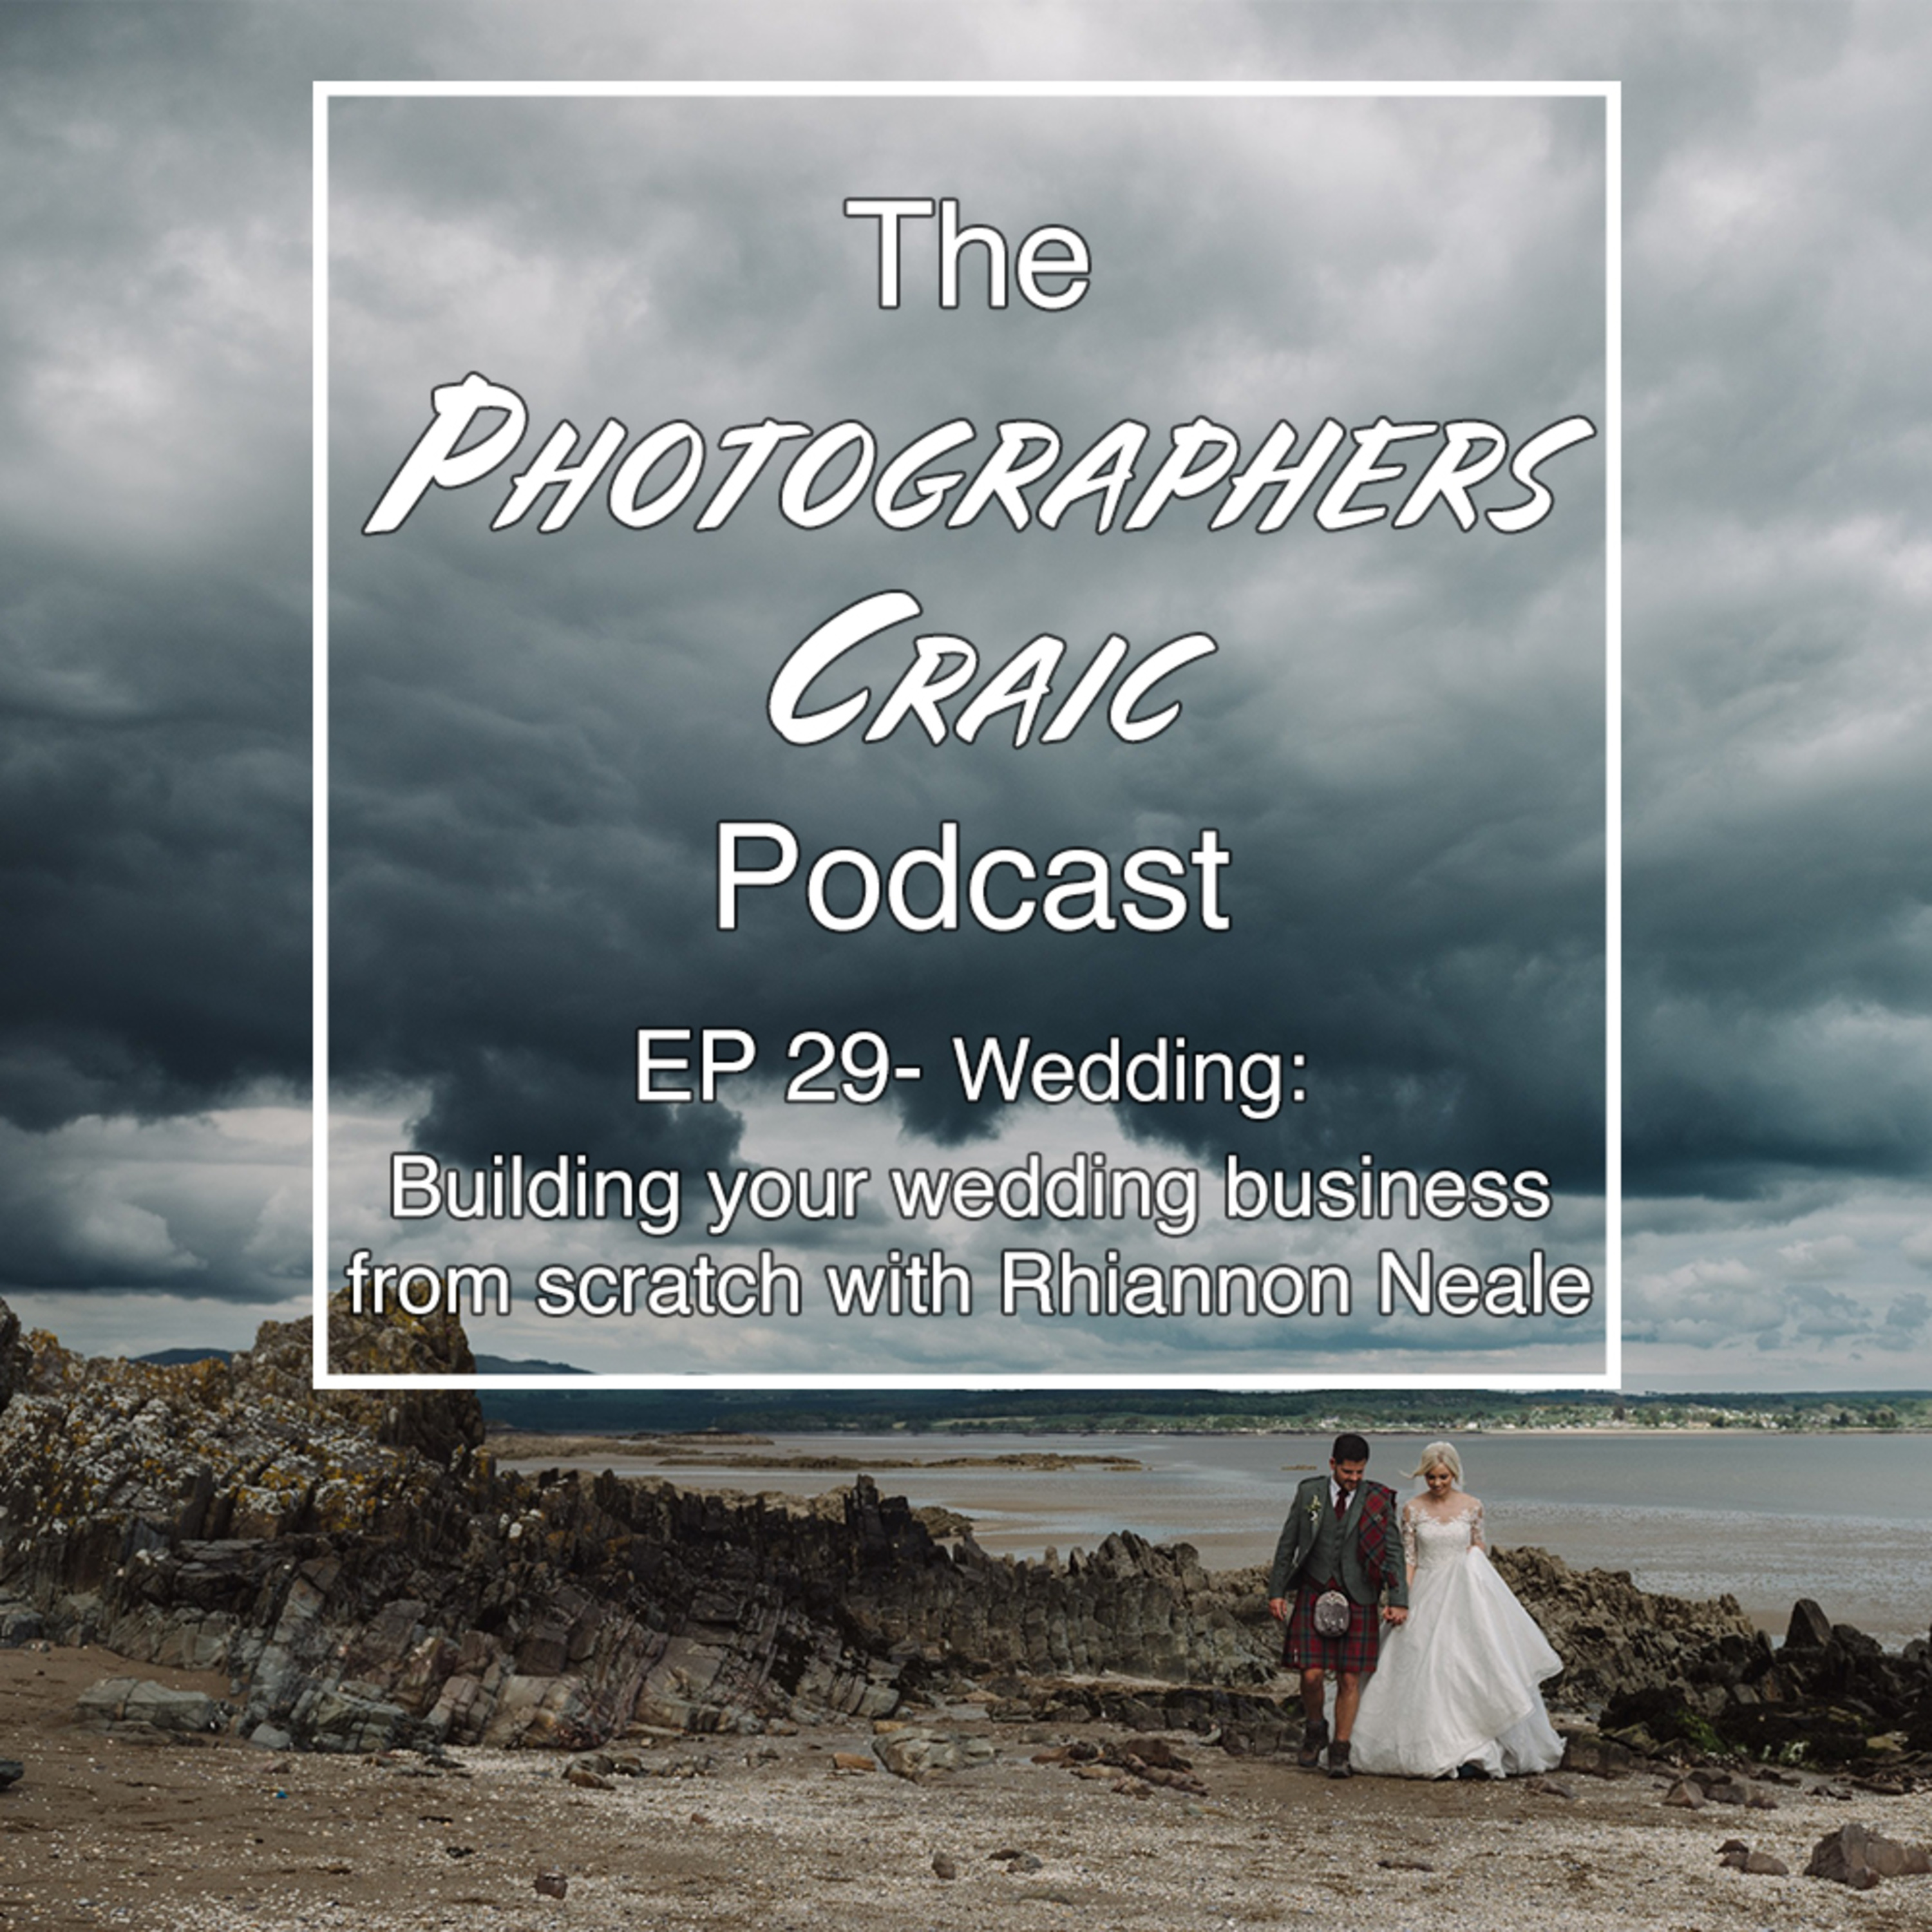 Building your wedding photography business from scratch with Rhiannon Neale